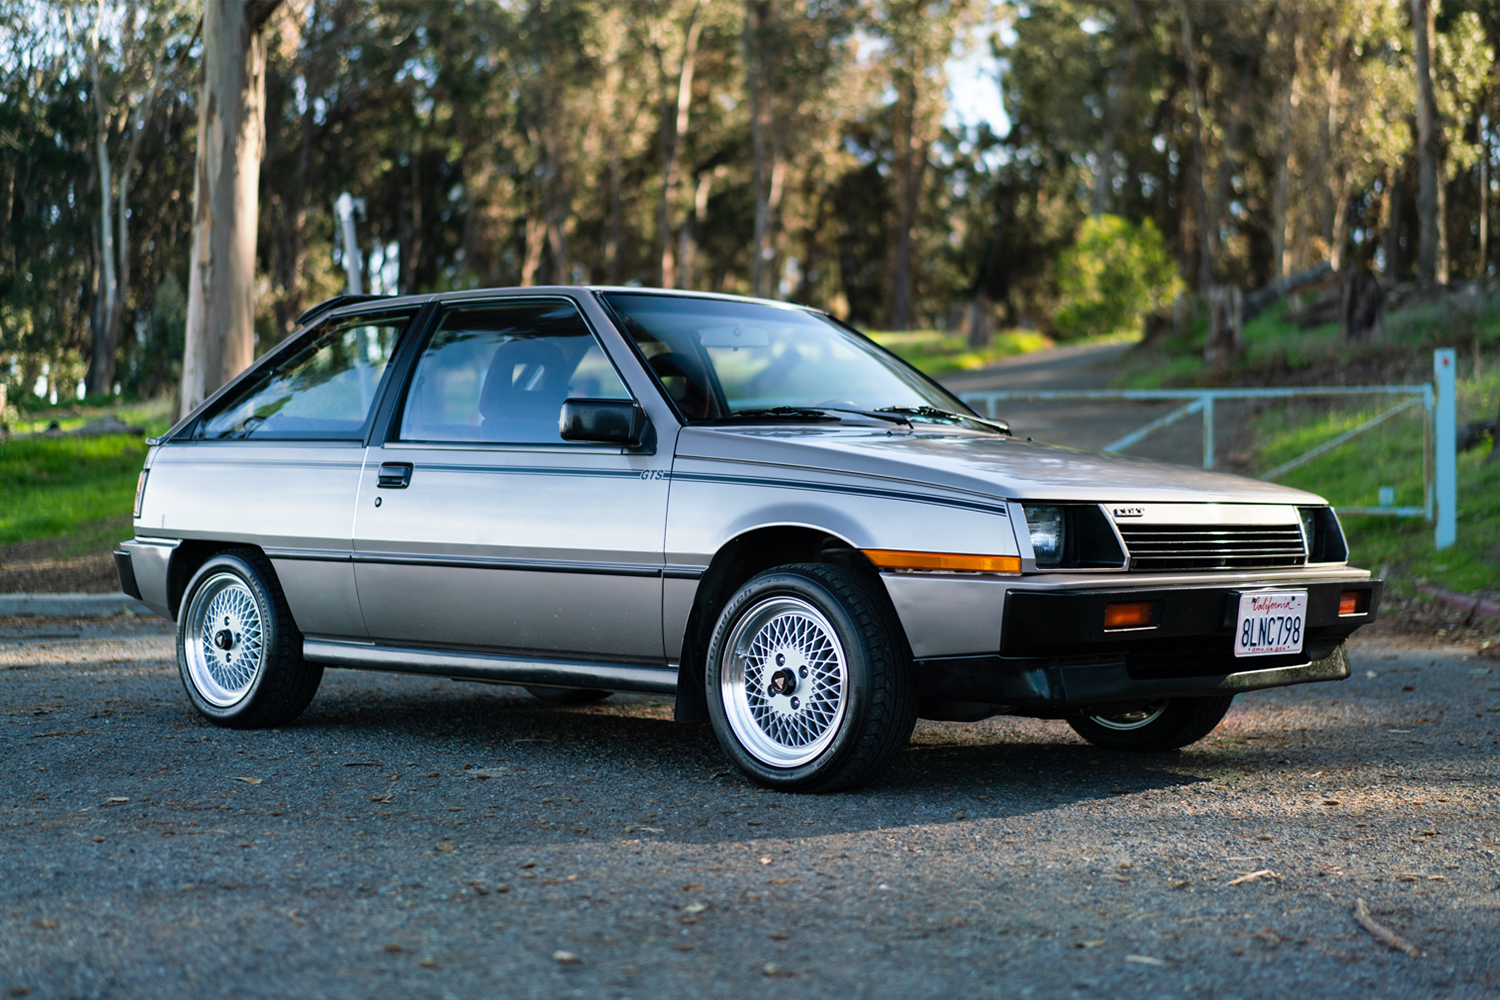 1985 Plymouth Colt GTS Turbo